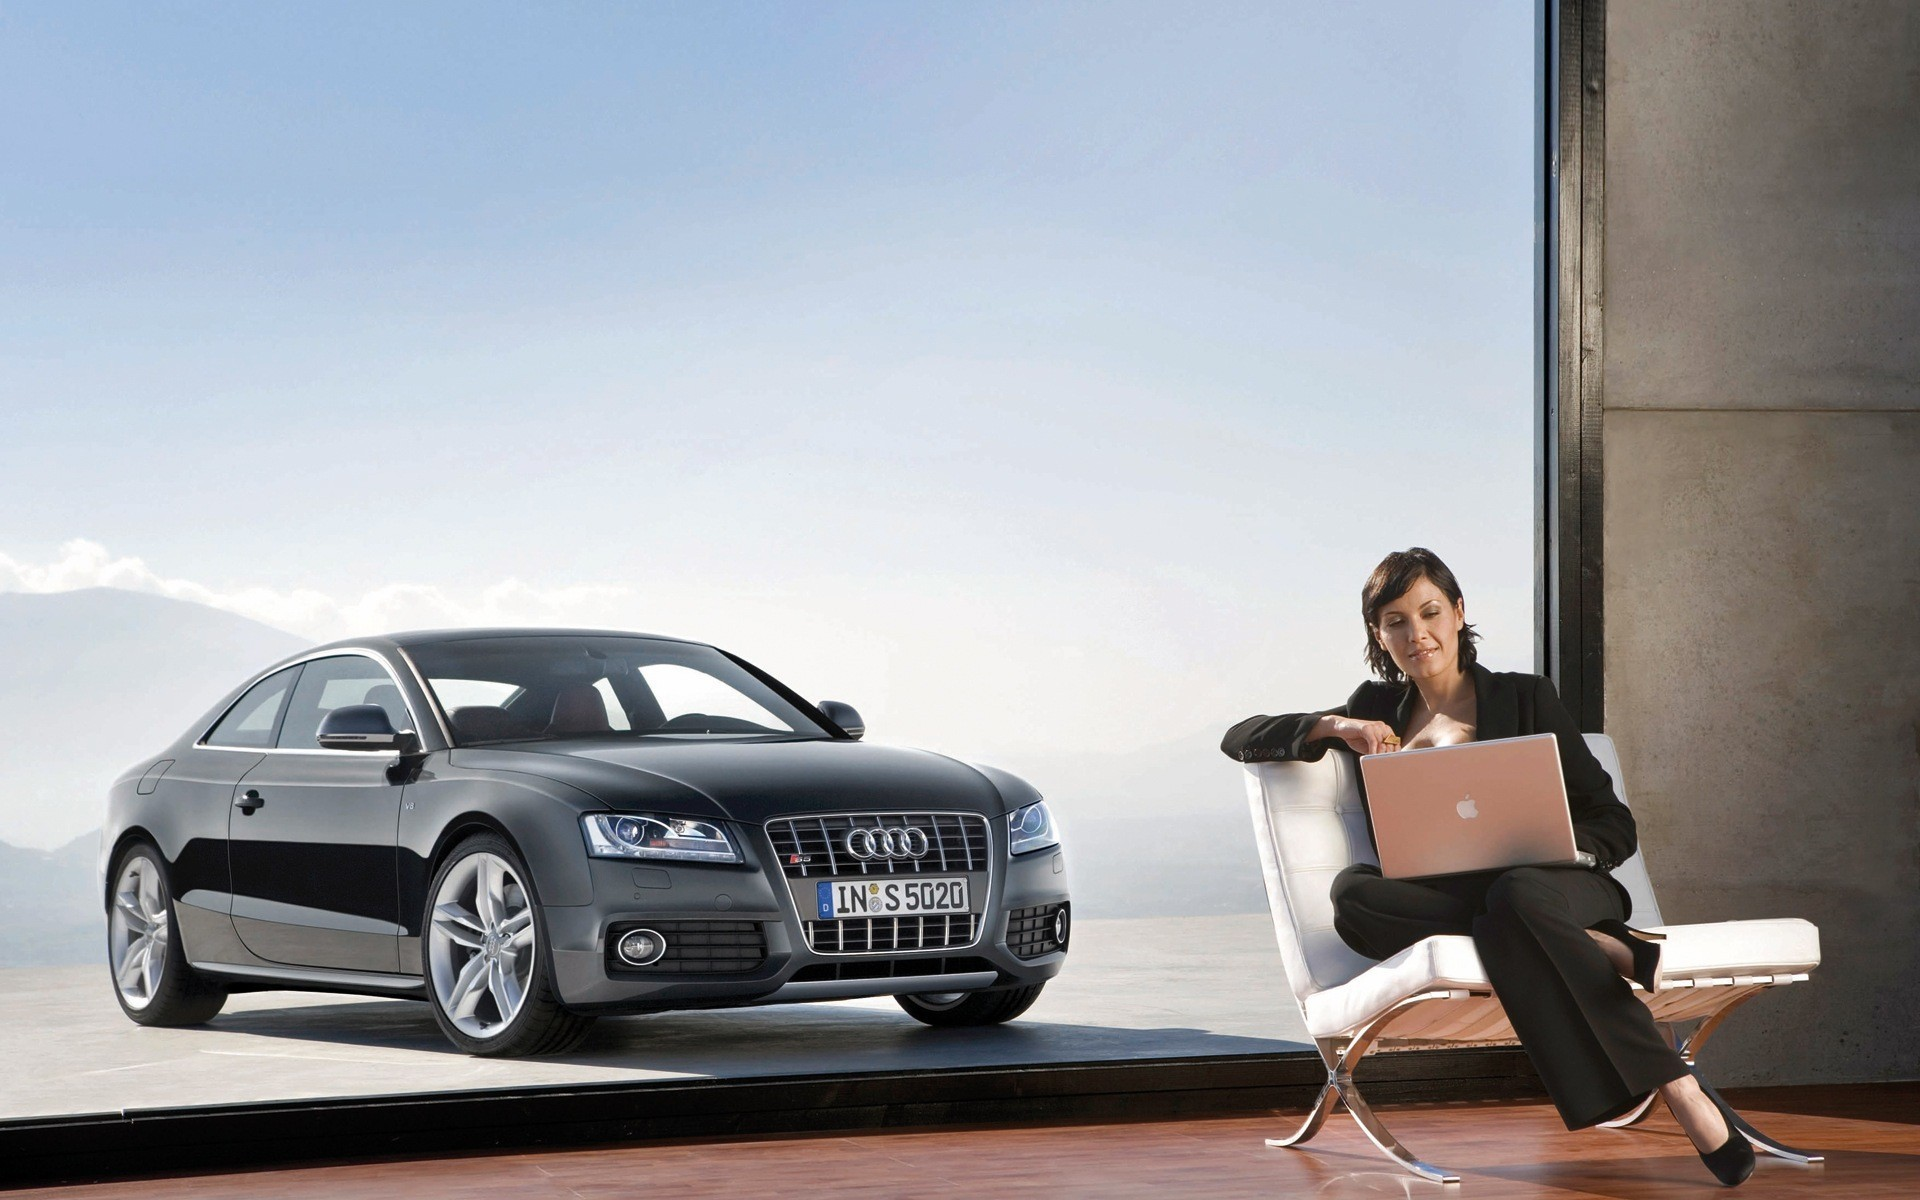 woman cars Audi Laptops HD Wallpaper